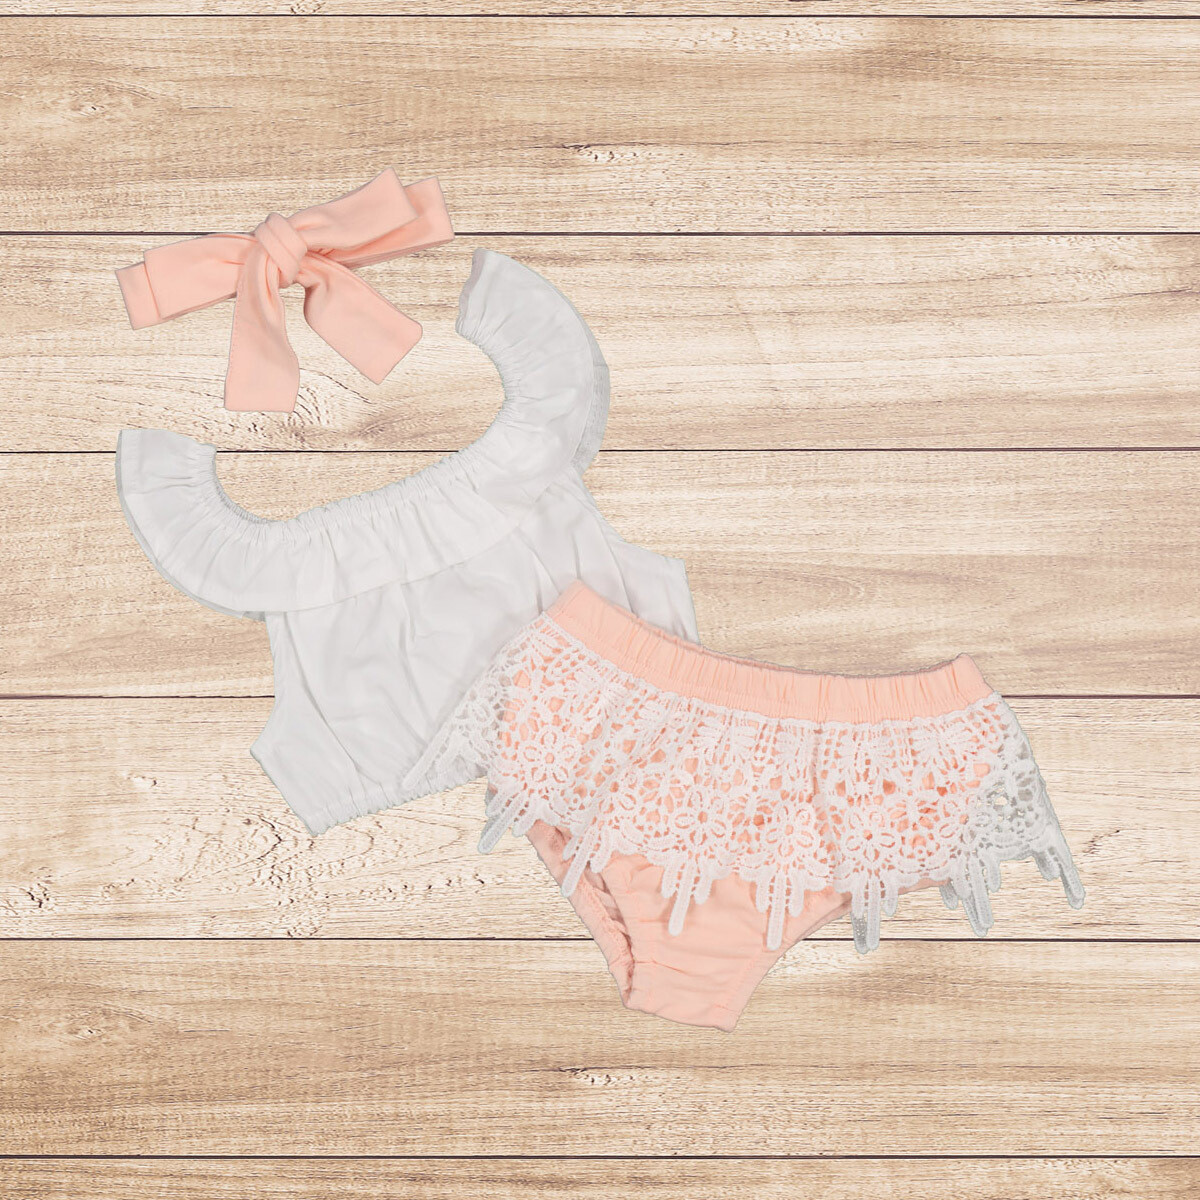 Girls 3PC White Ruffle Top with Pink Lace Romper with Matching Headband Set